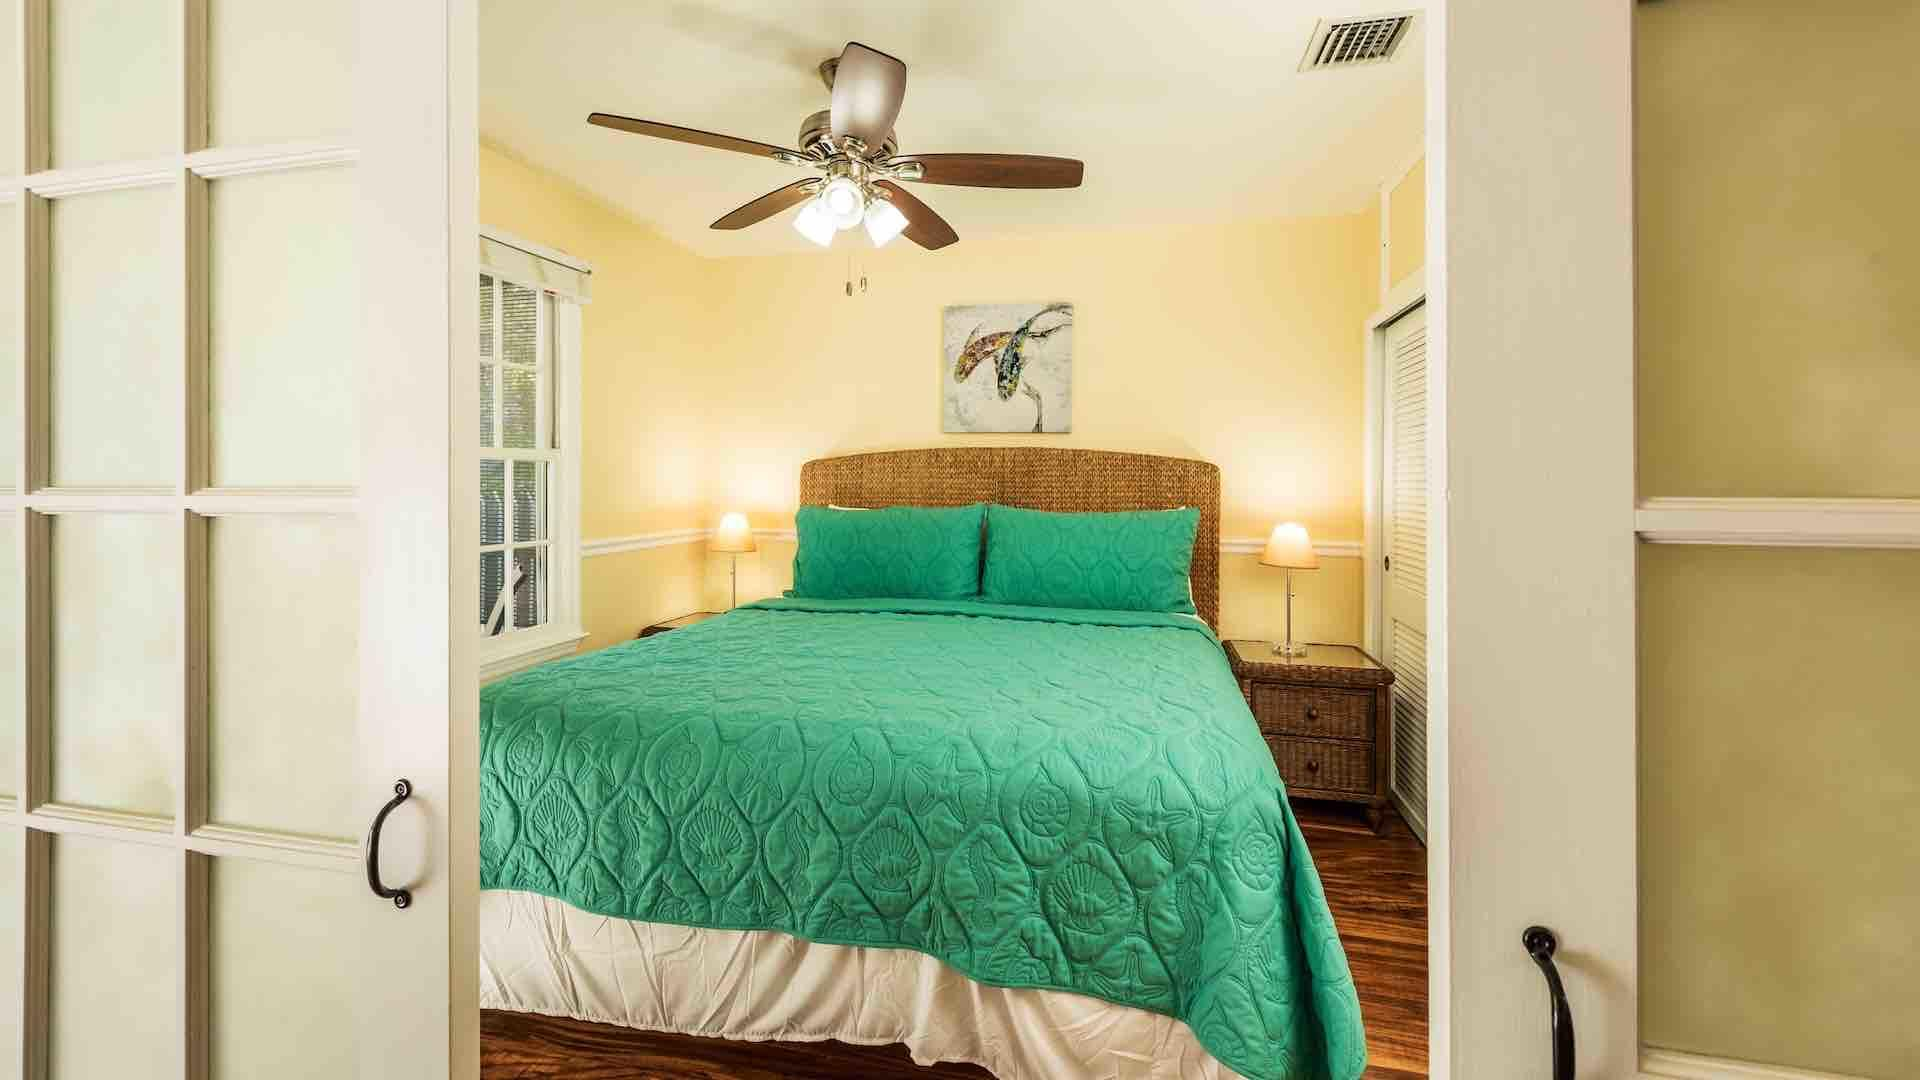 The master bedroom has a King bed and overhead fan...